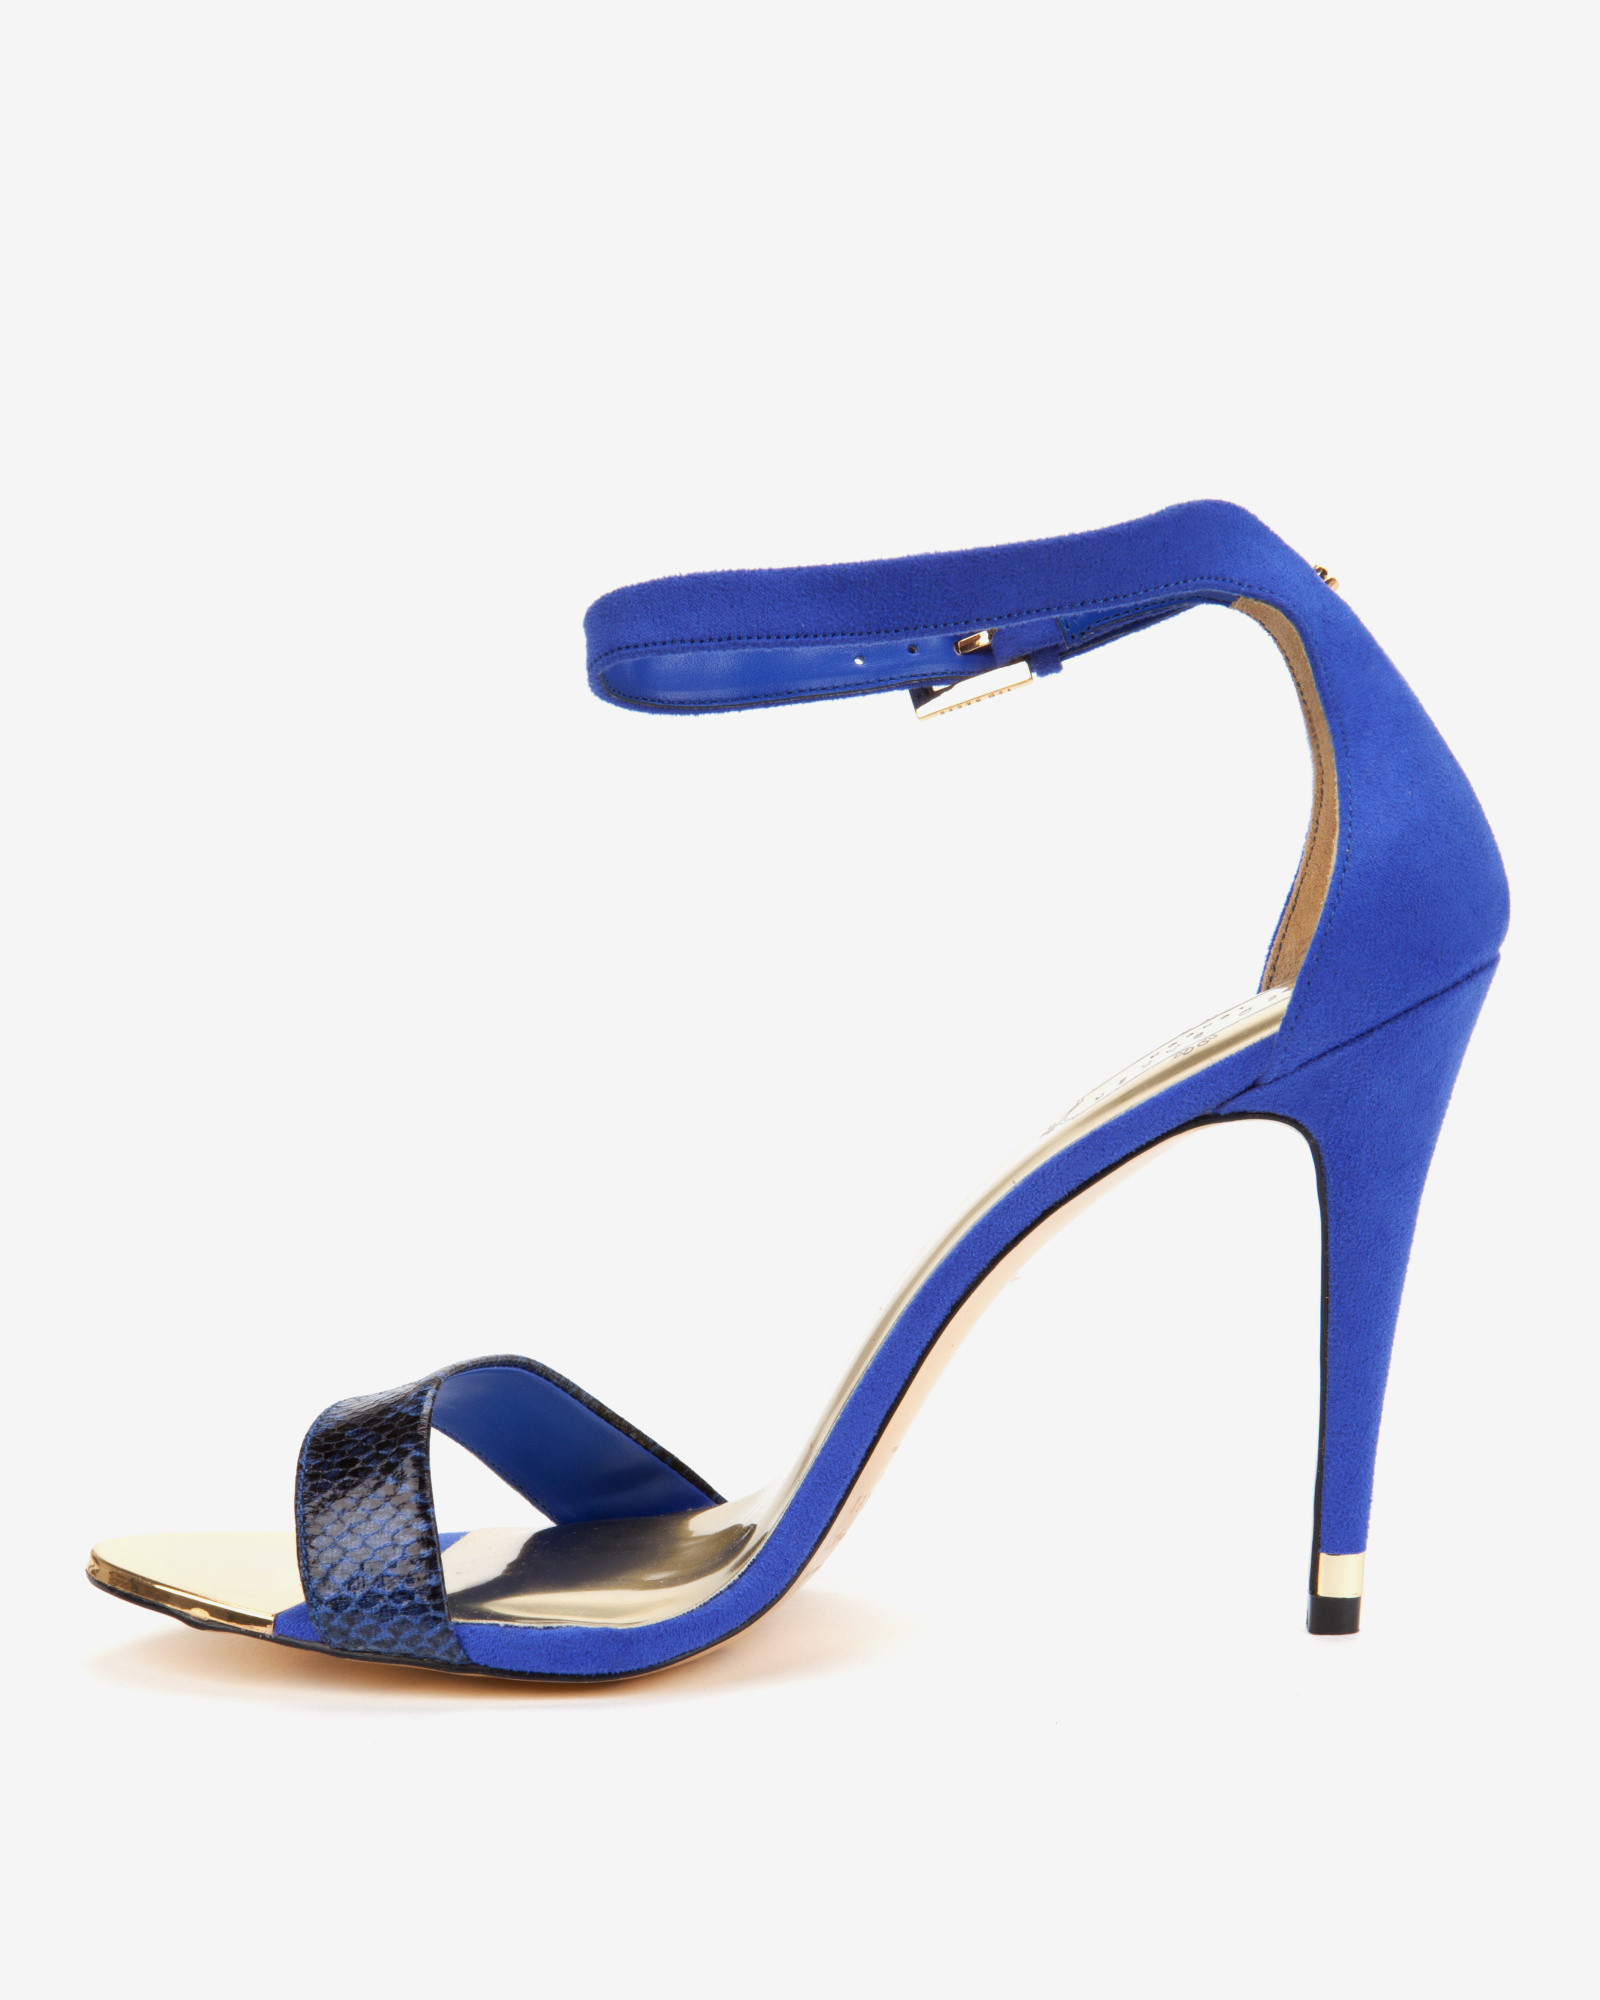 e4d6680e6e3d8 Ted Baker Ankle Strap Sandals in Blue - Lyst